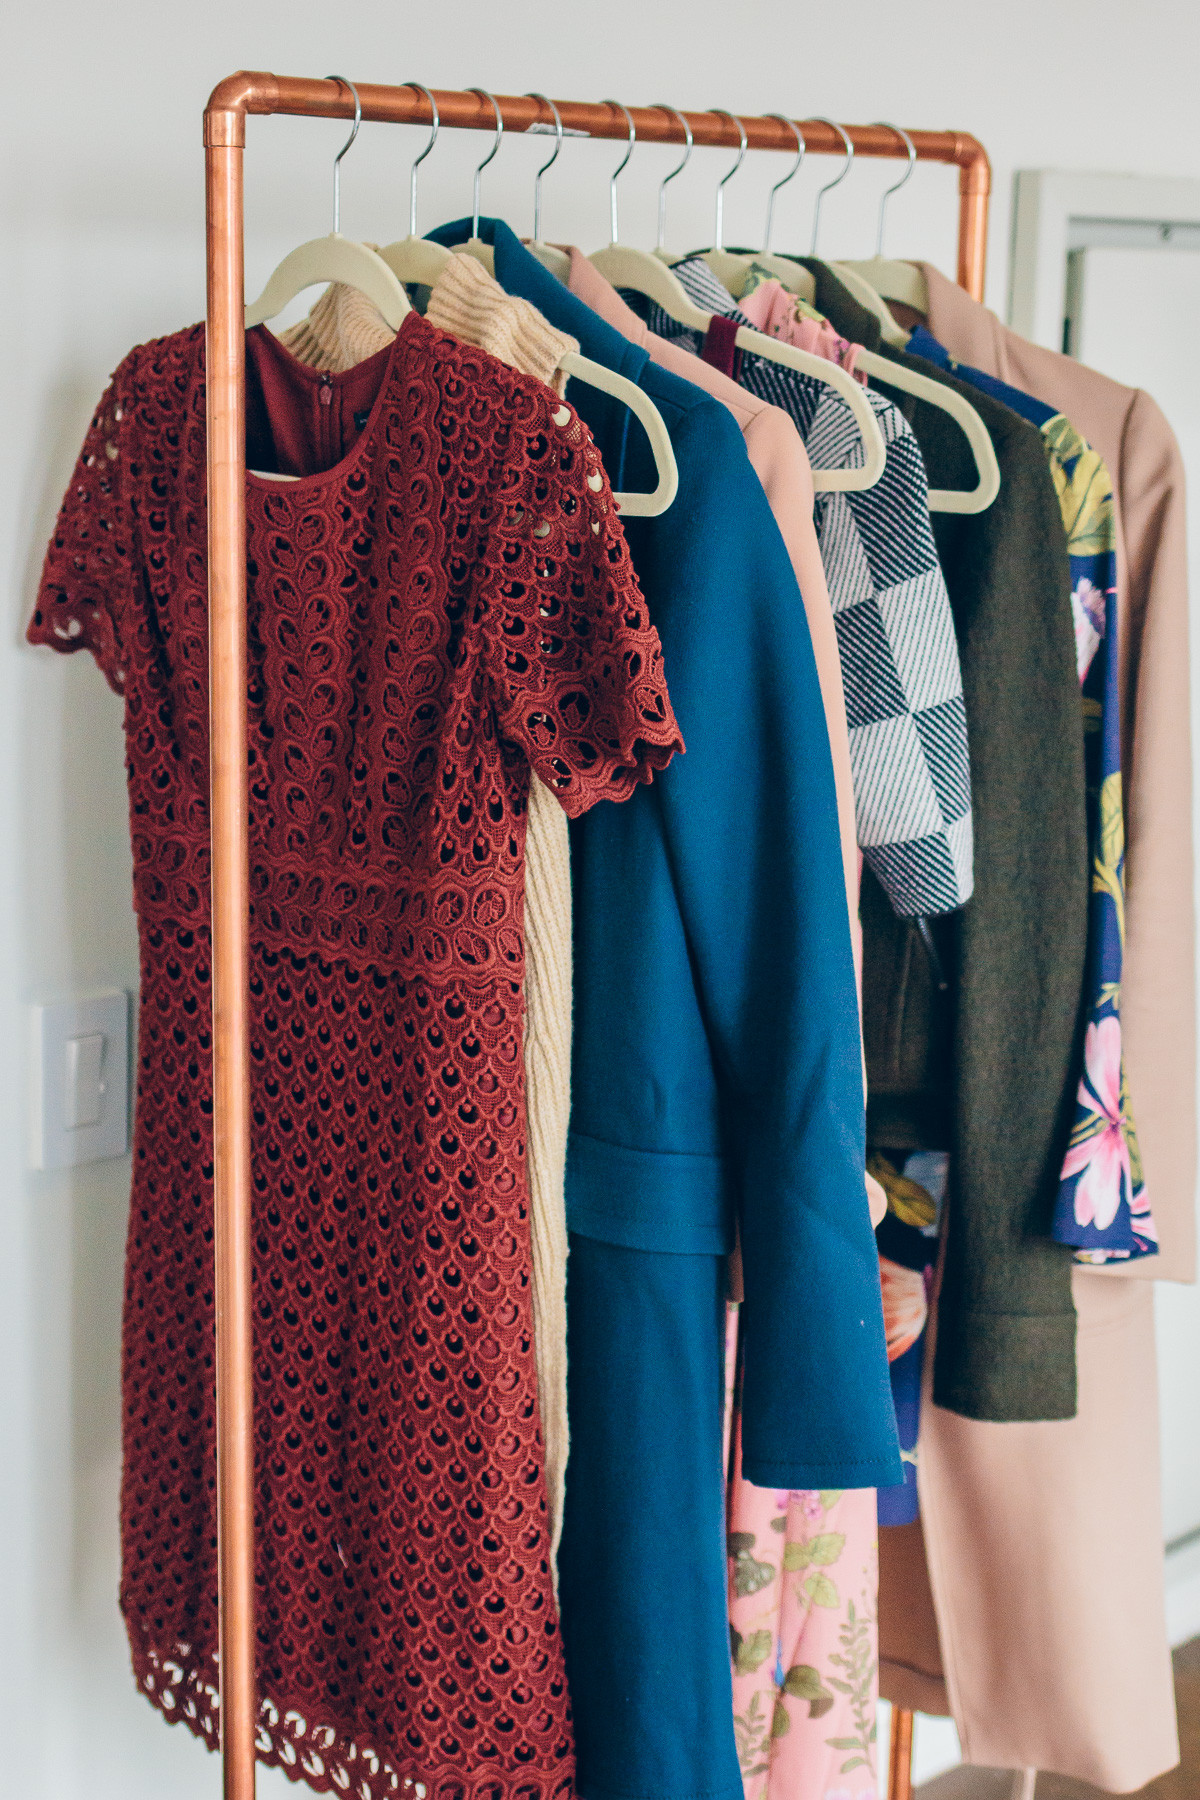 Best ideas about DIY Clothing Rack . Save or Pin DIY Copper Clothing Rack Now.